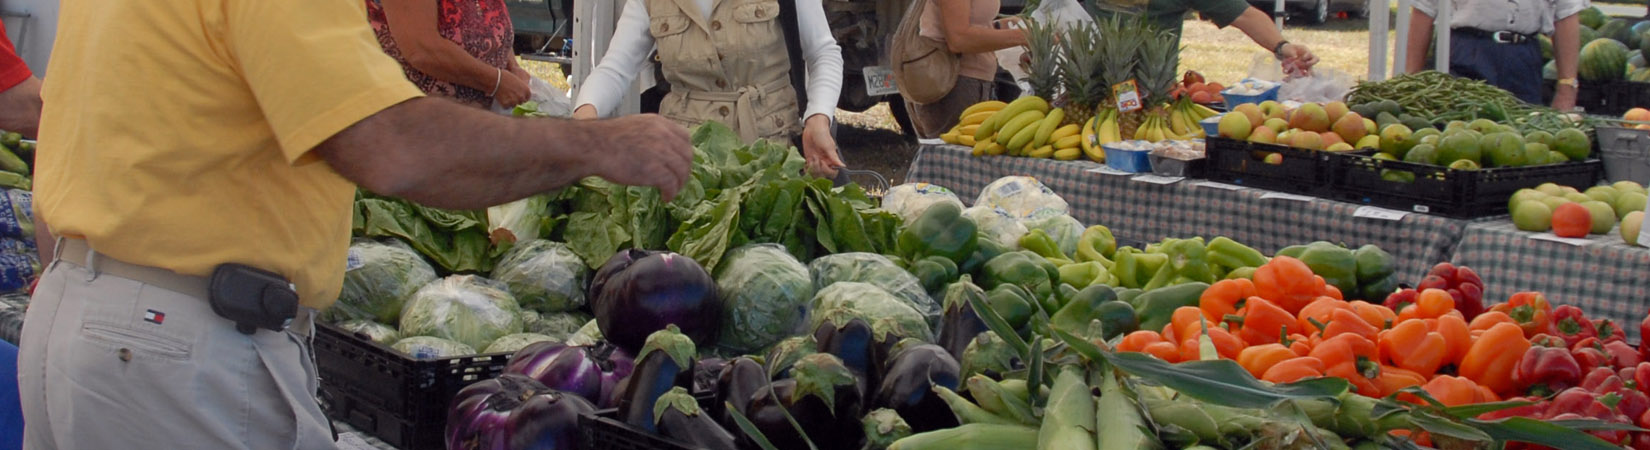 Patrons pick through piles of produce at the Phillippi Farmhouse Market in Sarasota County